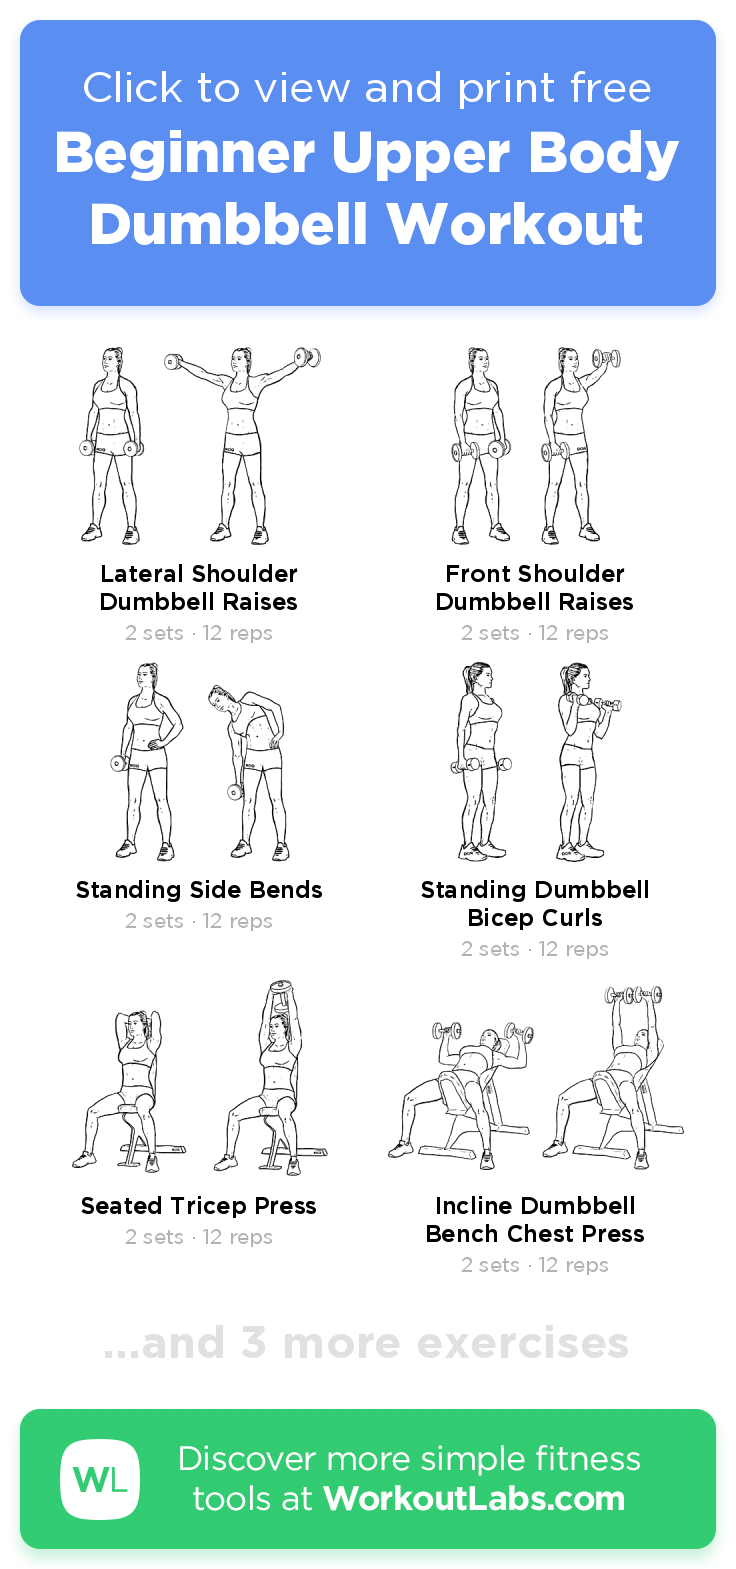 Beginner Upper Body Dumbbell Workout Click To View And Print This Illustrated Exerc Upper Body Dumbbell Workout Dumbbell Workout Upper Body Workout For Women